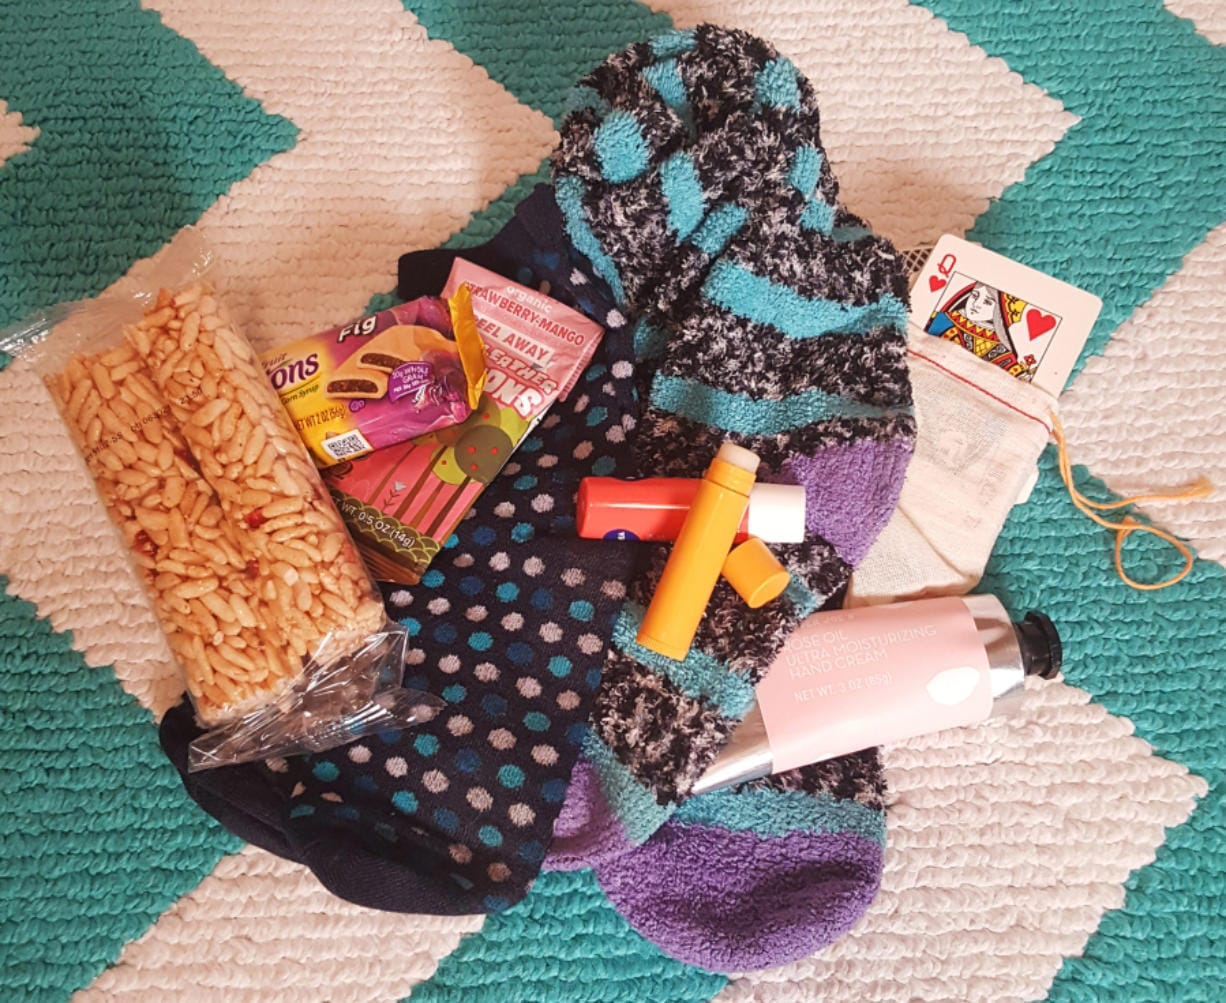 Just a few small things can make a big difference: snacks, warm socks, lip balm, lotion and a deck of cards can make the hours pass more easily.